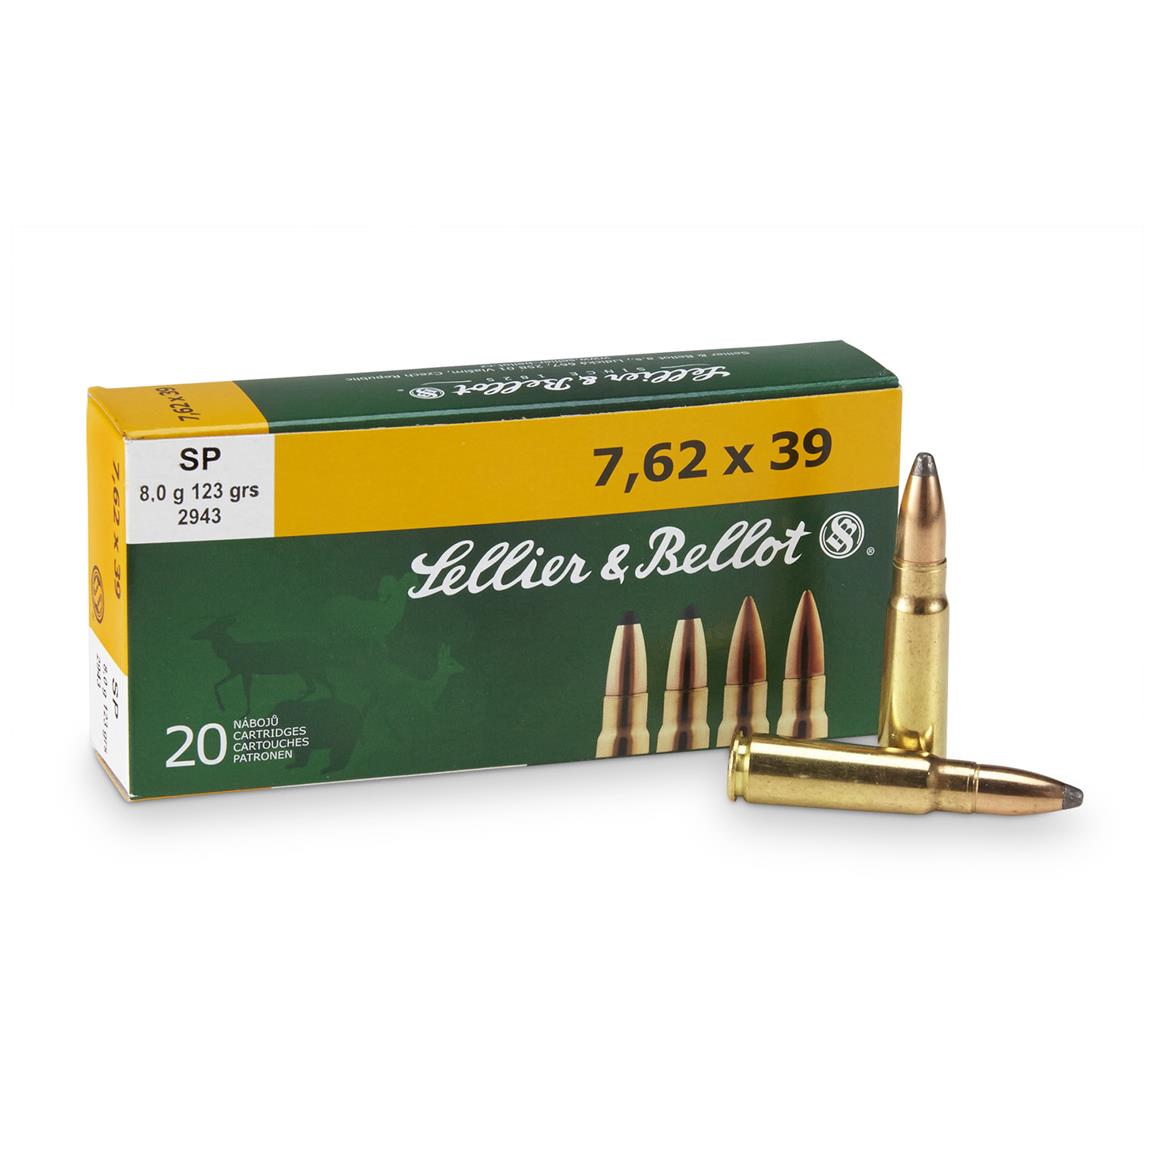 Sellier & Bellot® Rifle 7.62x39 123 Grain SP 20 rounds